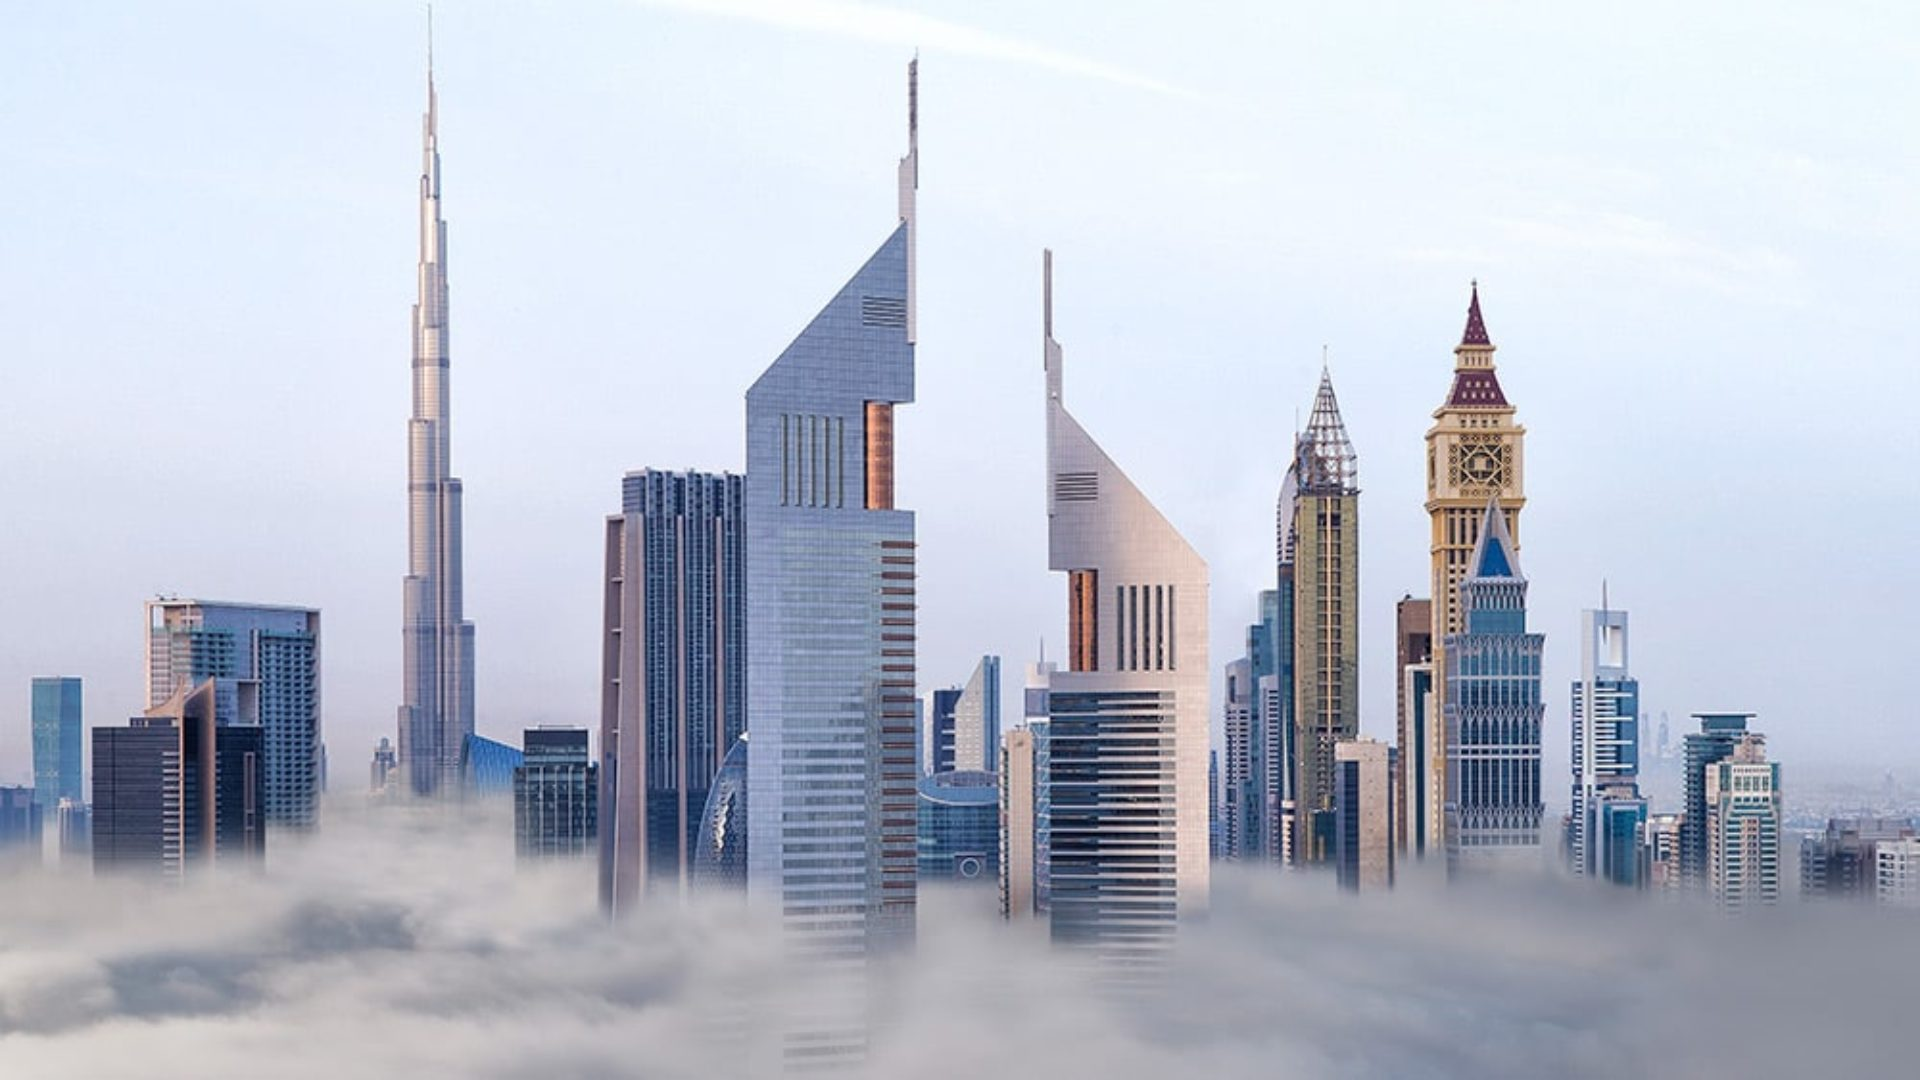 Aerial view of Jumeirah Emirates Towers in the clouds